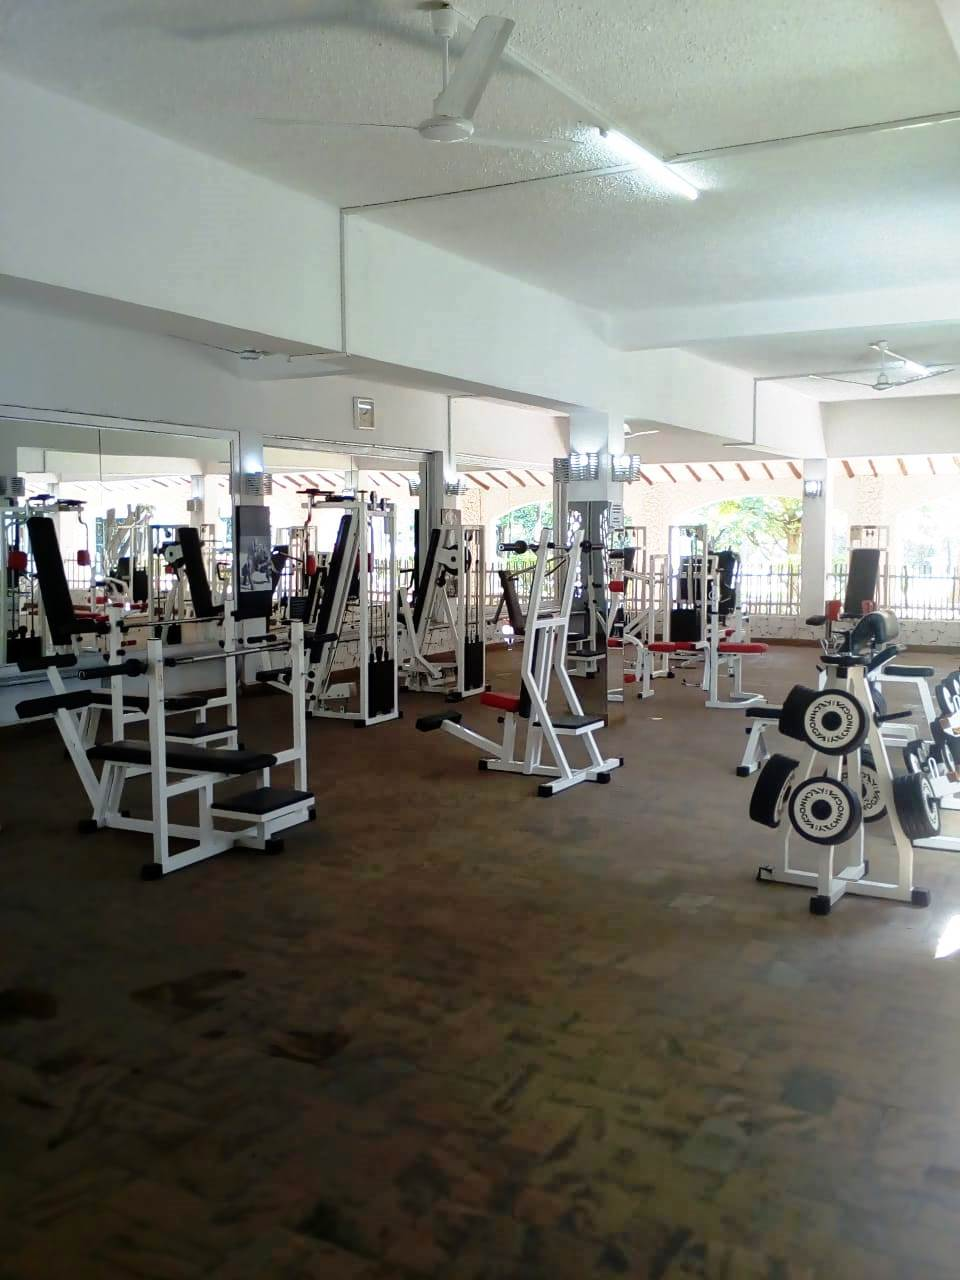 Gym for sale in malindi u2013 earthland property investment limited